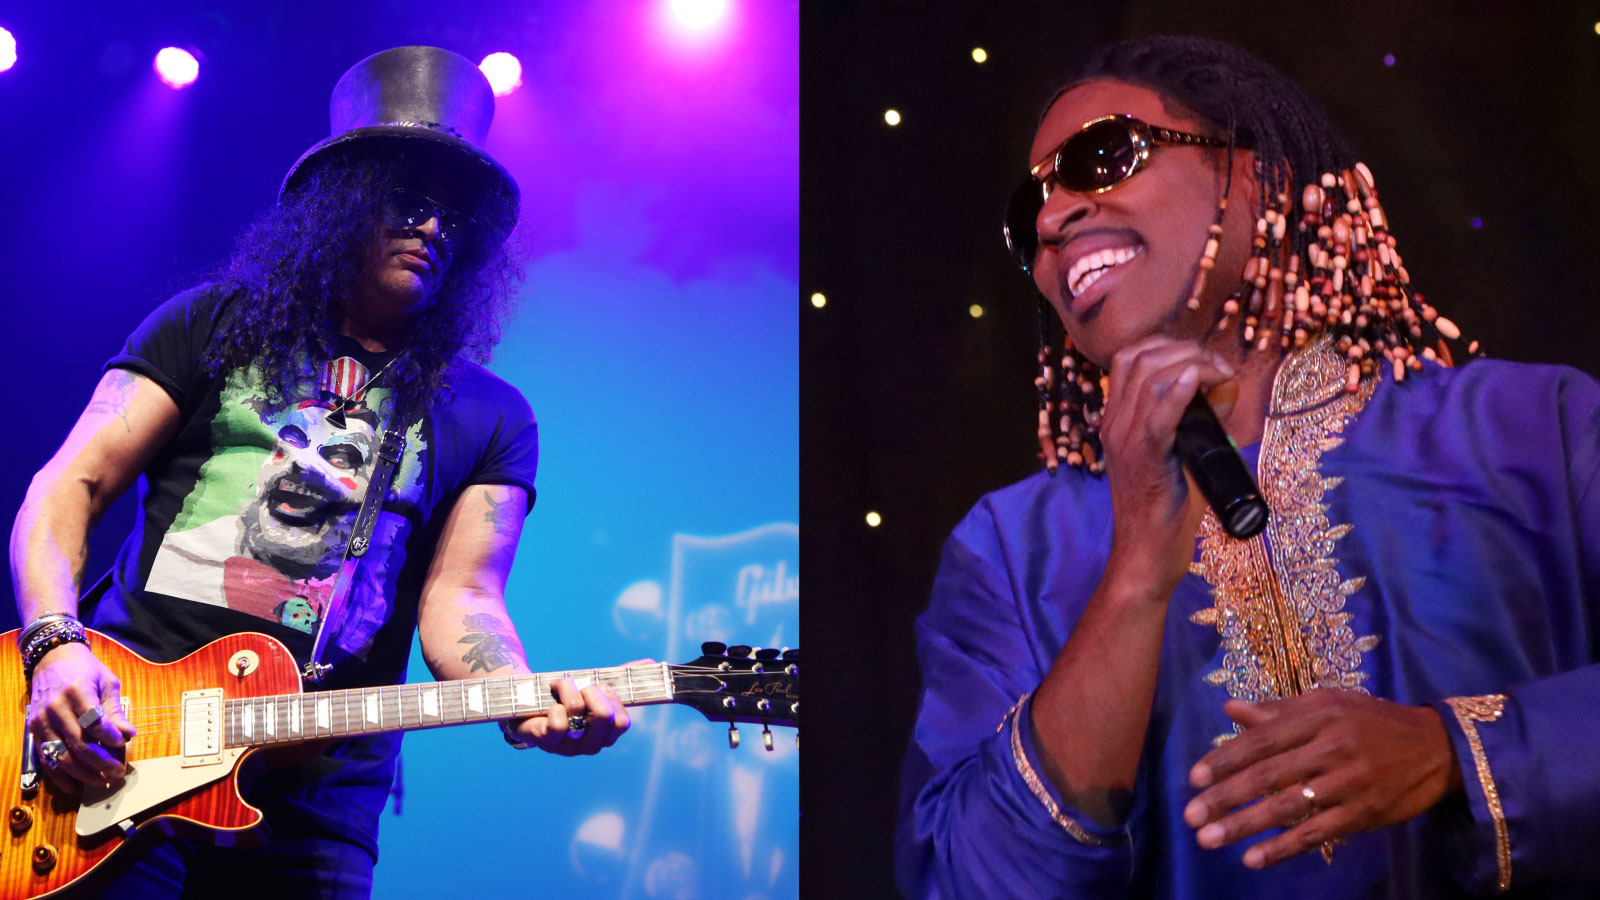 From Slash to Stevie: The Rock Star Name Quiz